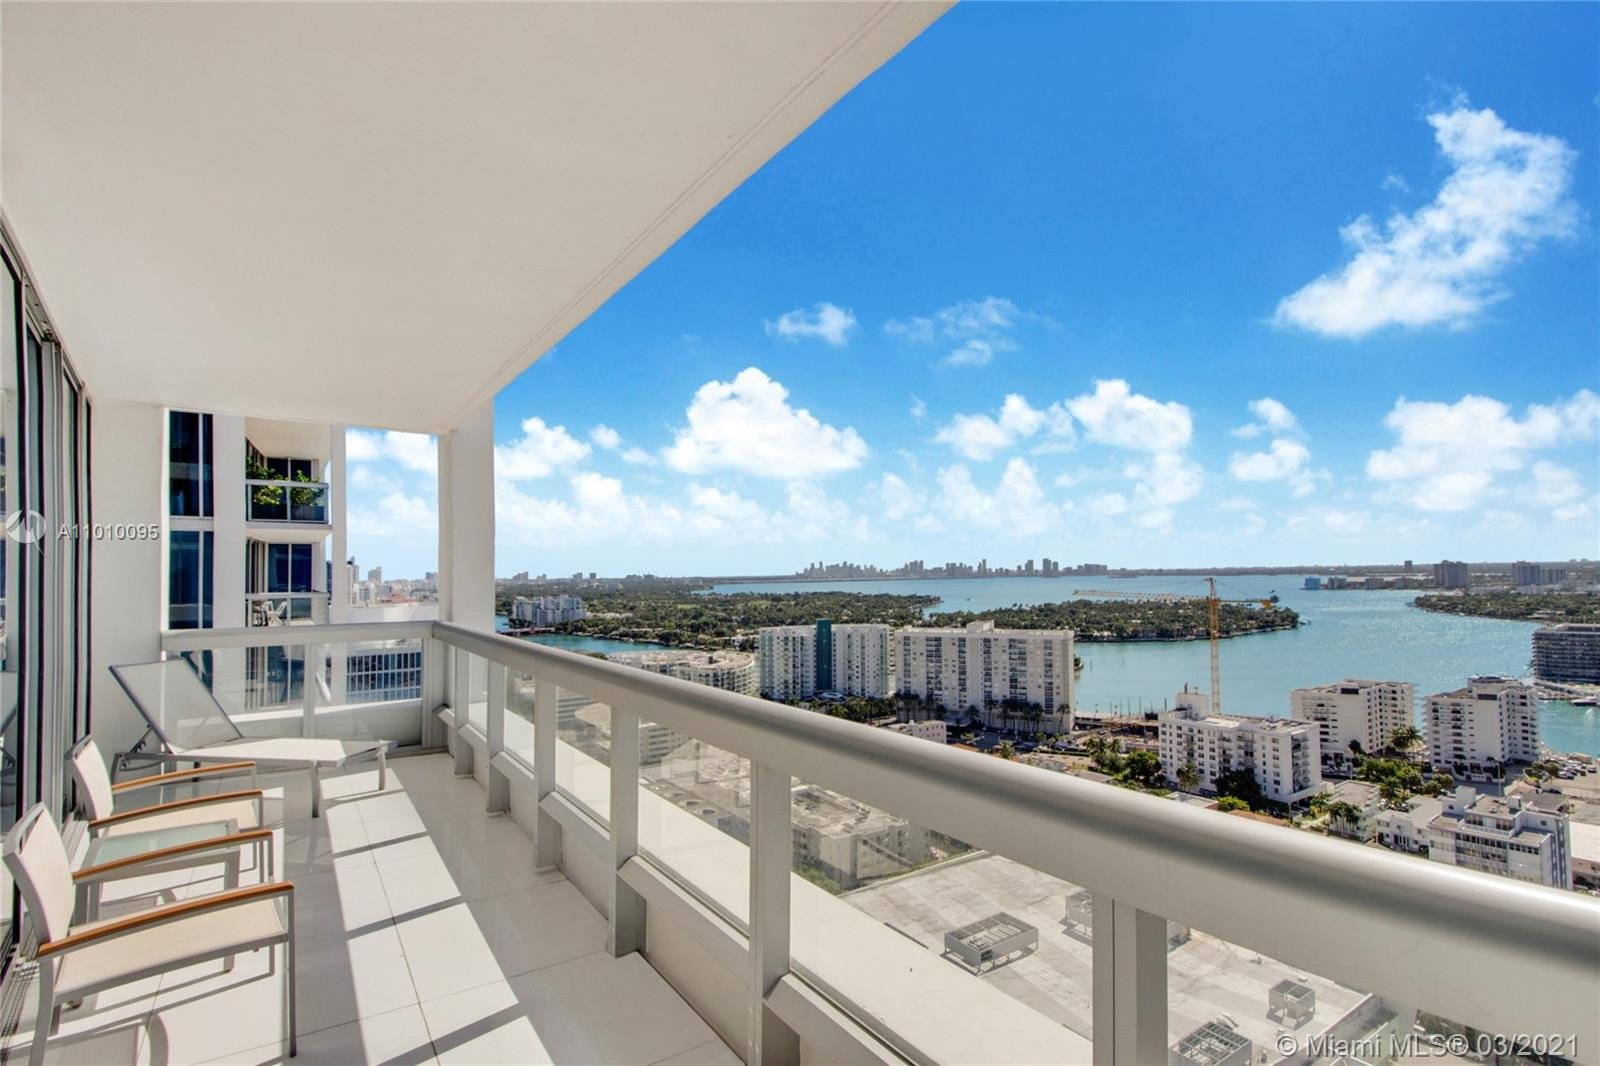 Sweeping panoramic bay and city skyline views from this beautiful 2 BD / 2 BA corner unit in prestigious North Tower at the world-renowned Carillon Wellness Resort. Very bright, turn key unit with spacious balcony, high end kitchen, marble floors, spacious bathroom, floor-to-ceiling impact windows, pool facing balcony and all fixtures/finishes top of the line. Deluxe amenities, 70,000 sq ft Spa/Fitness center, 40+ Fitness Classes daily, 4 swimming pools, full service Concierge, farm to table restaurant, Juice Bar, boutique, 24hr security, valet, wellness staff, full Beach Service and much more.